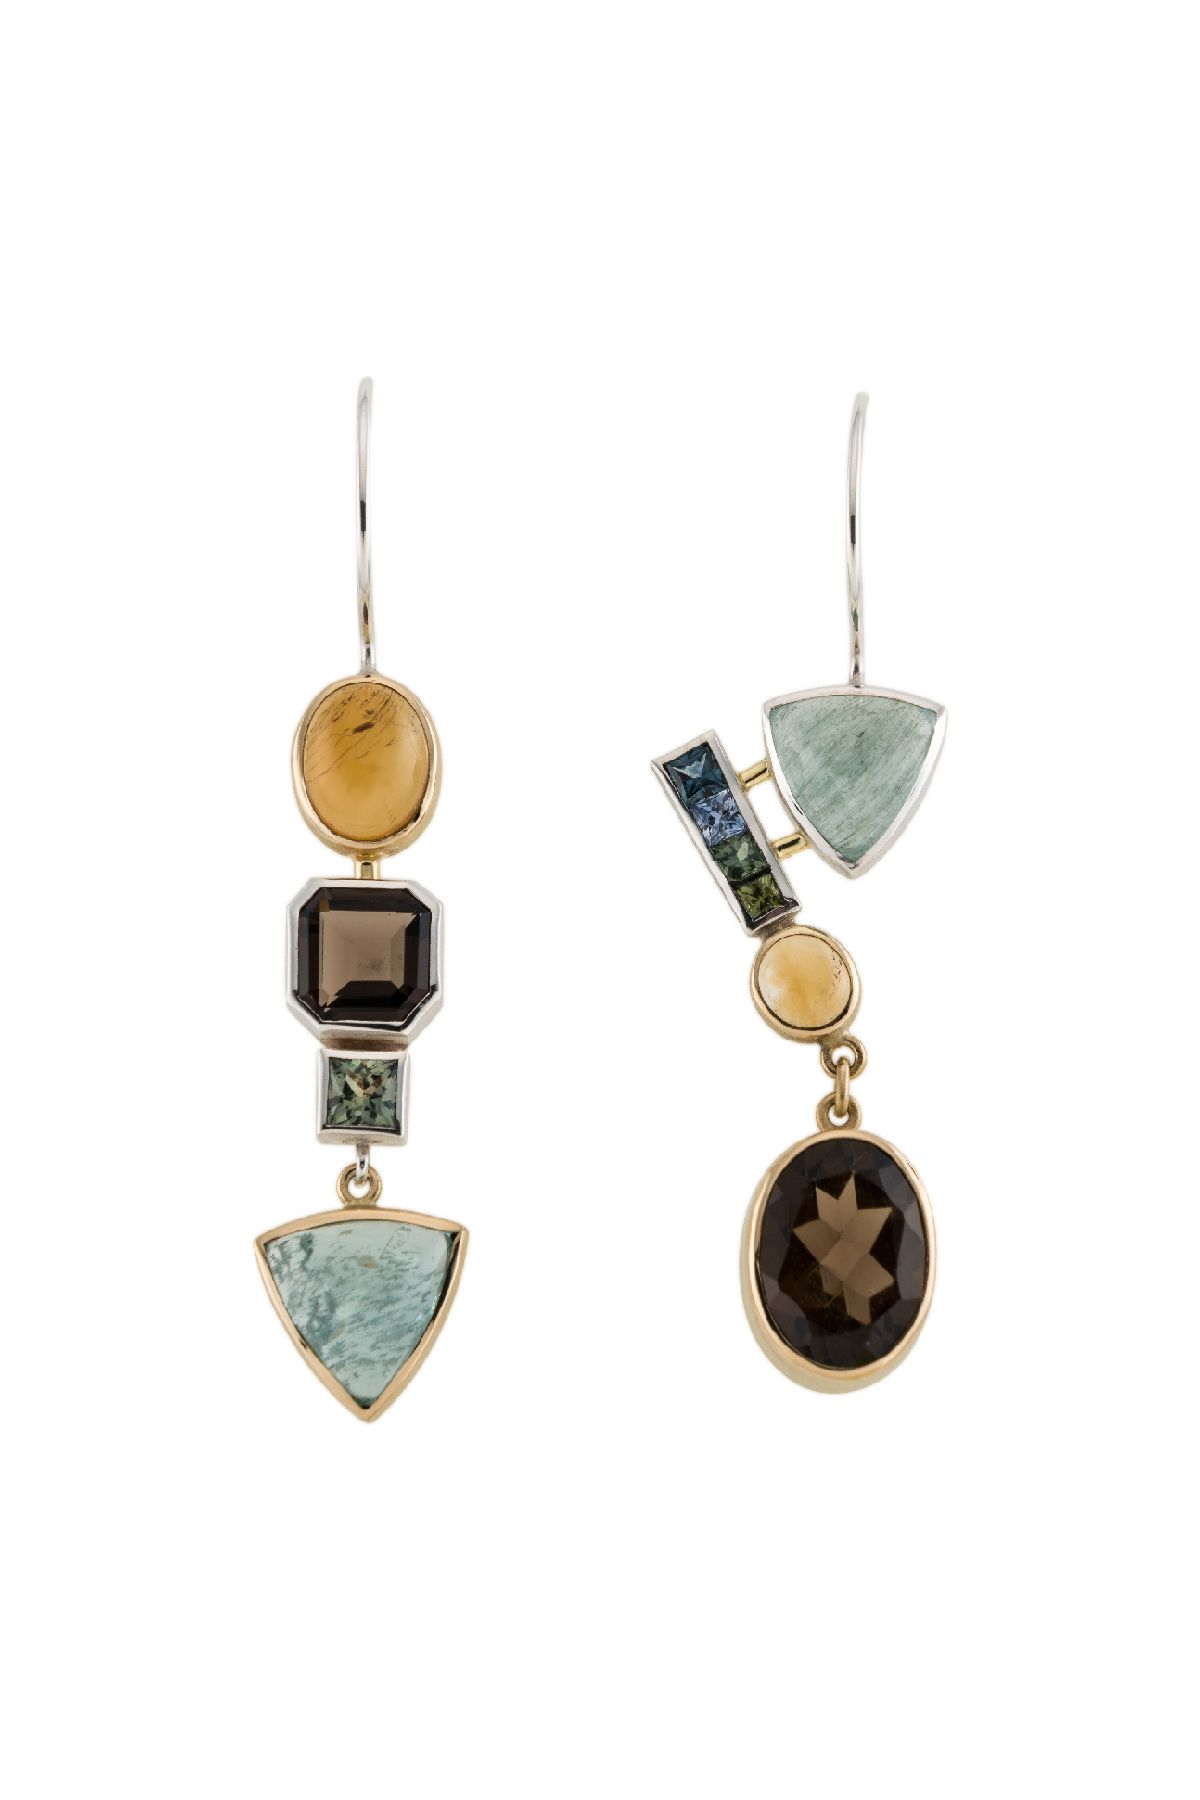 EARRINGS - STERLING SILVER, 18KT, SAPPHIRE, CITRINE, AQUAMARINE, SMOKEY QUARTZ #AQUAMARINE #MARCH #BIRTHSTONE #EARRINGS